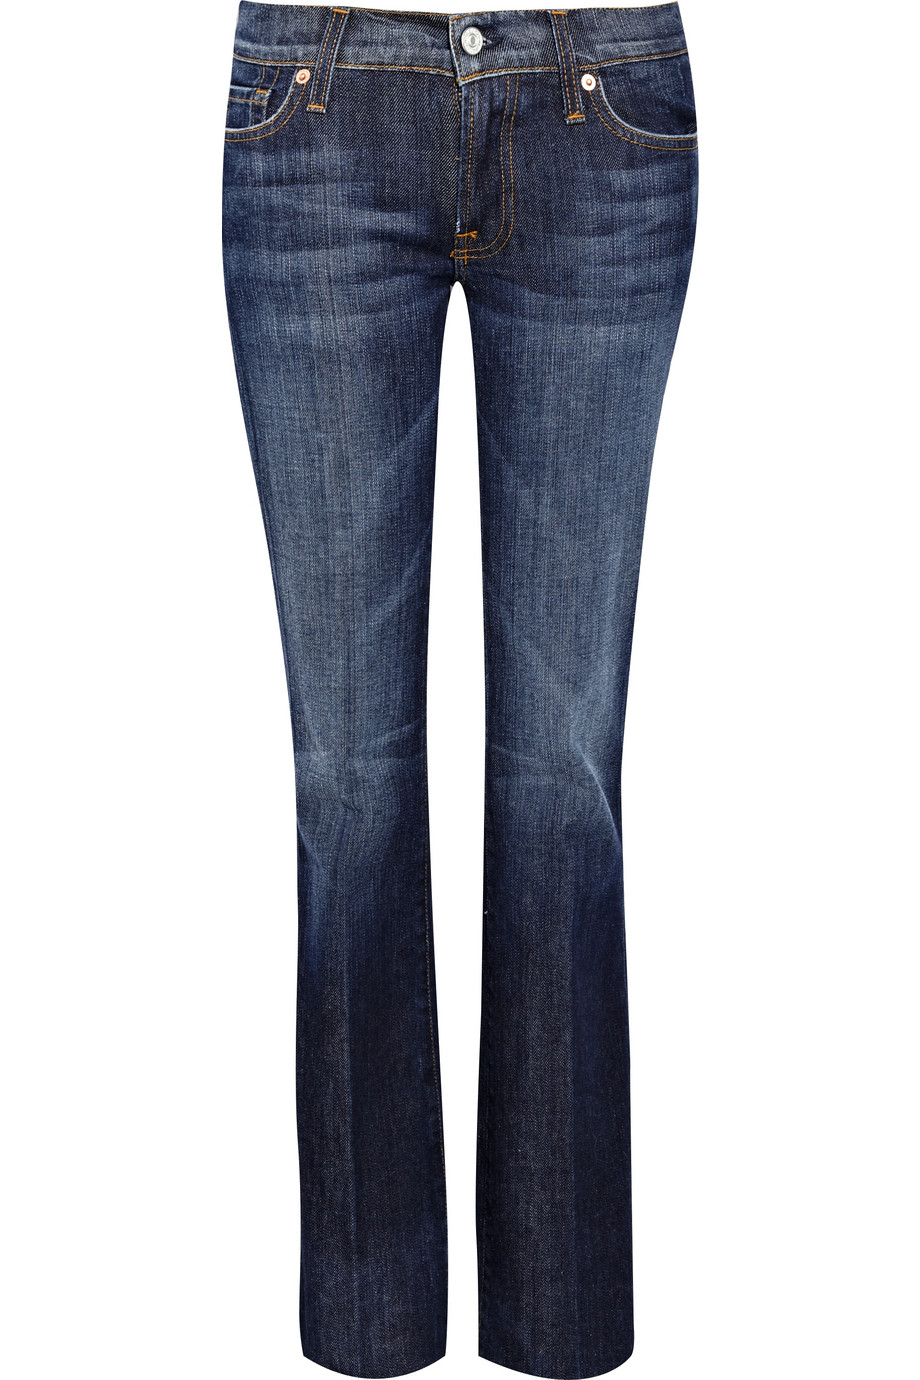 7 for all mankind midrise bootcut jeans in blue navy lyst. Black Bedroom Furniture Sets. Home Design Ideas